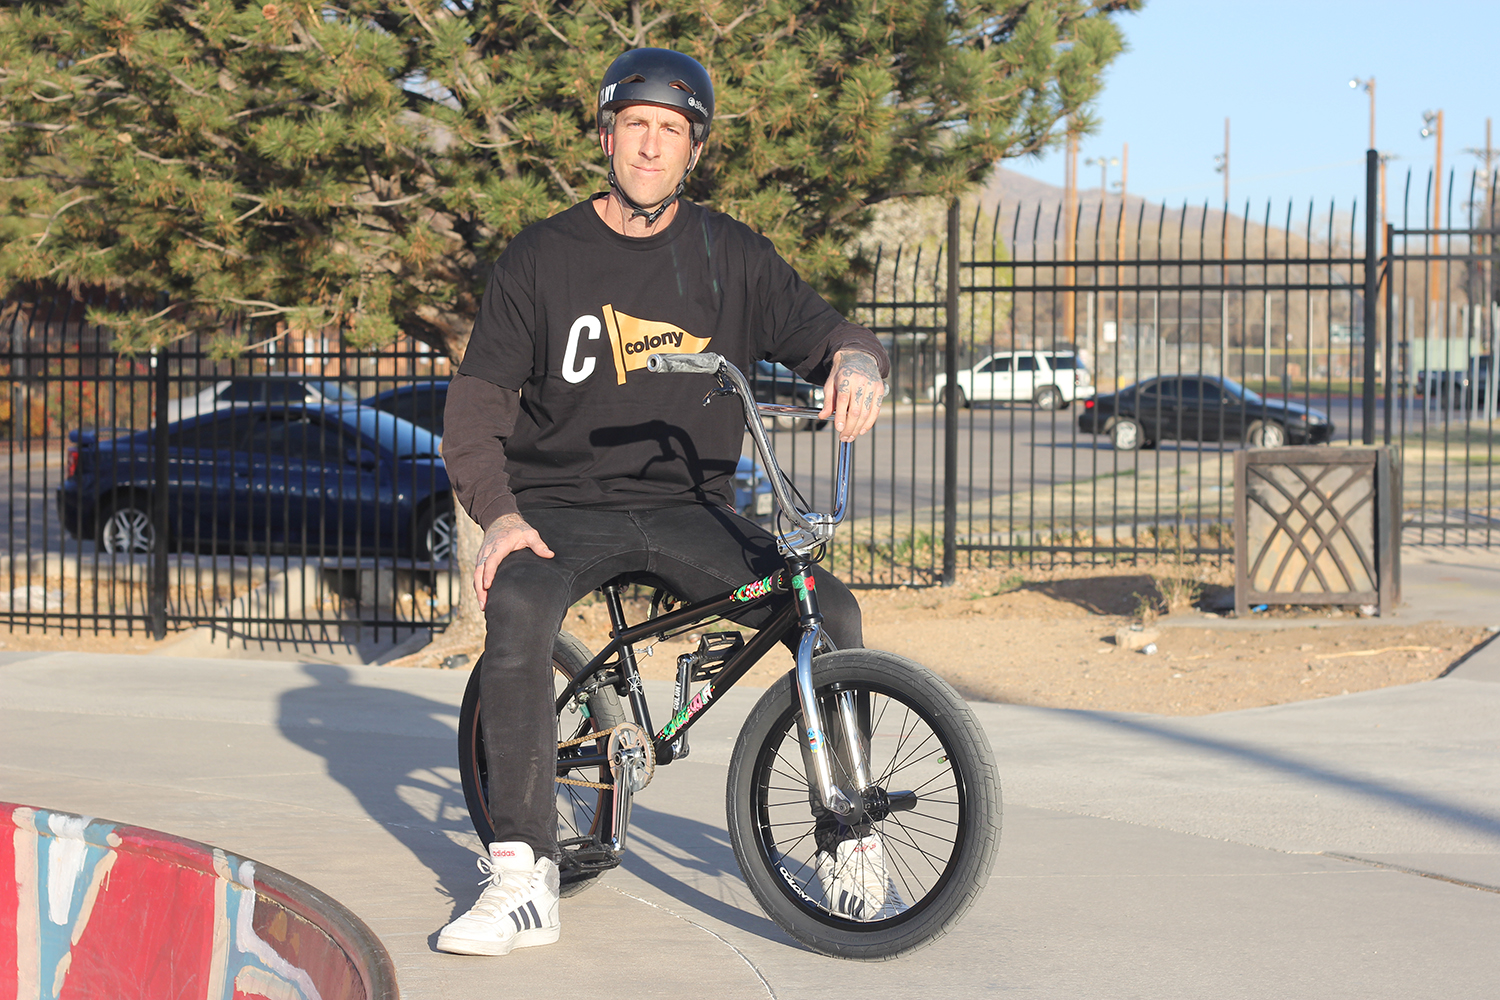 Steve Woodward Colony BMX